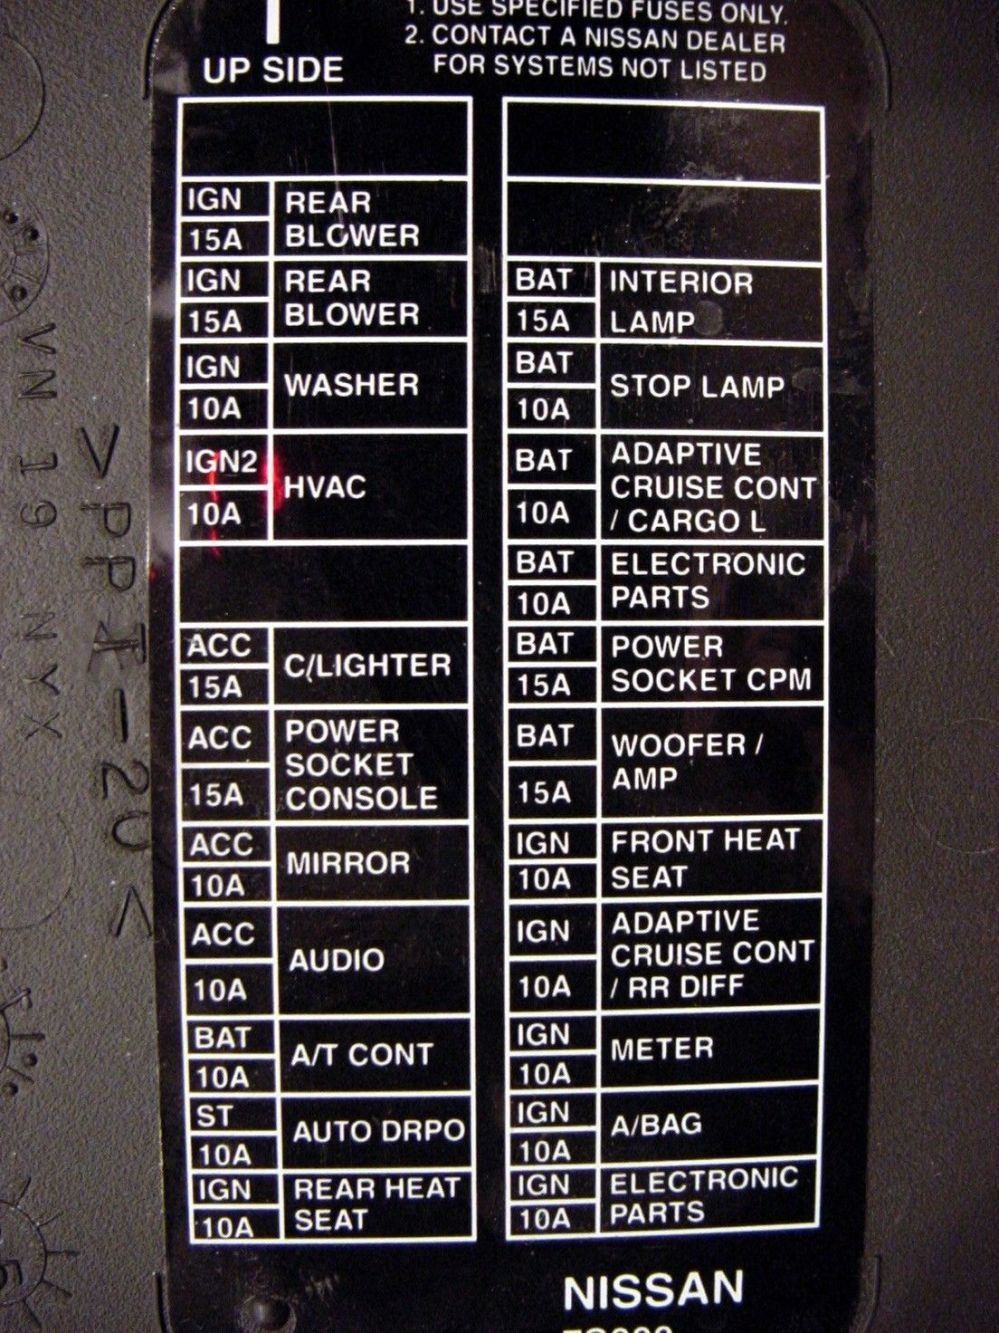 medium resolution of 2005 nissan armada fuse diagram wiring library nissan armada lights 2004 fuse diagram please help nissan